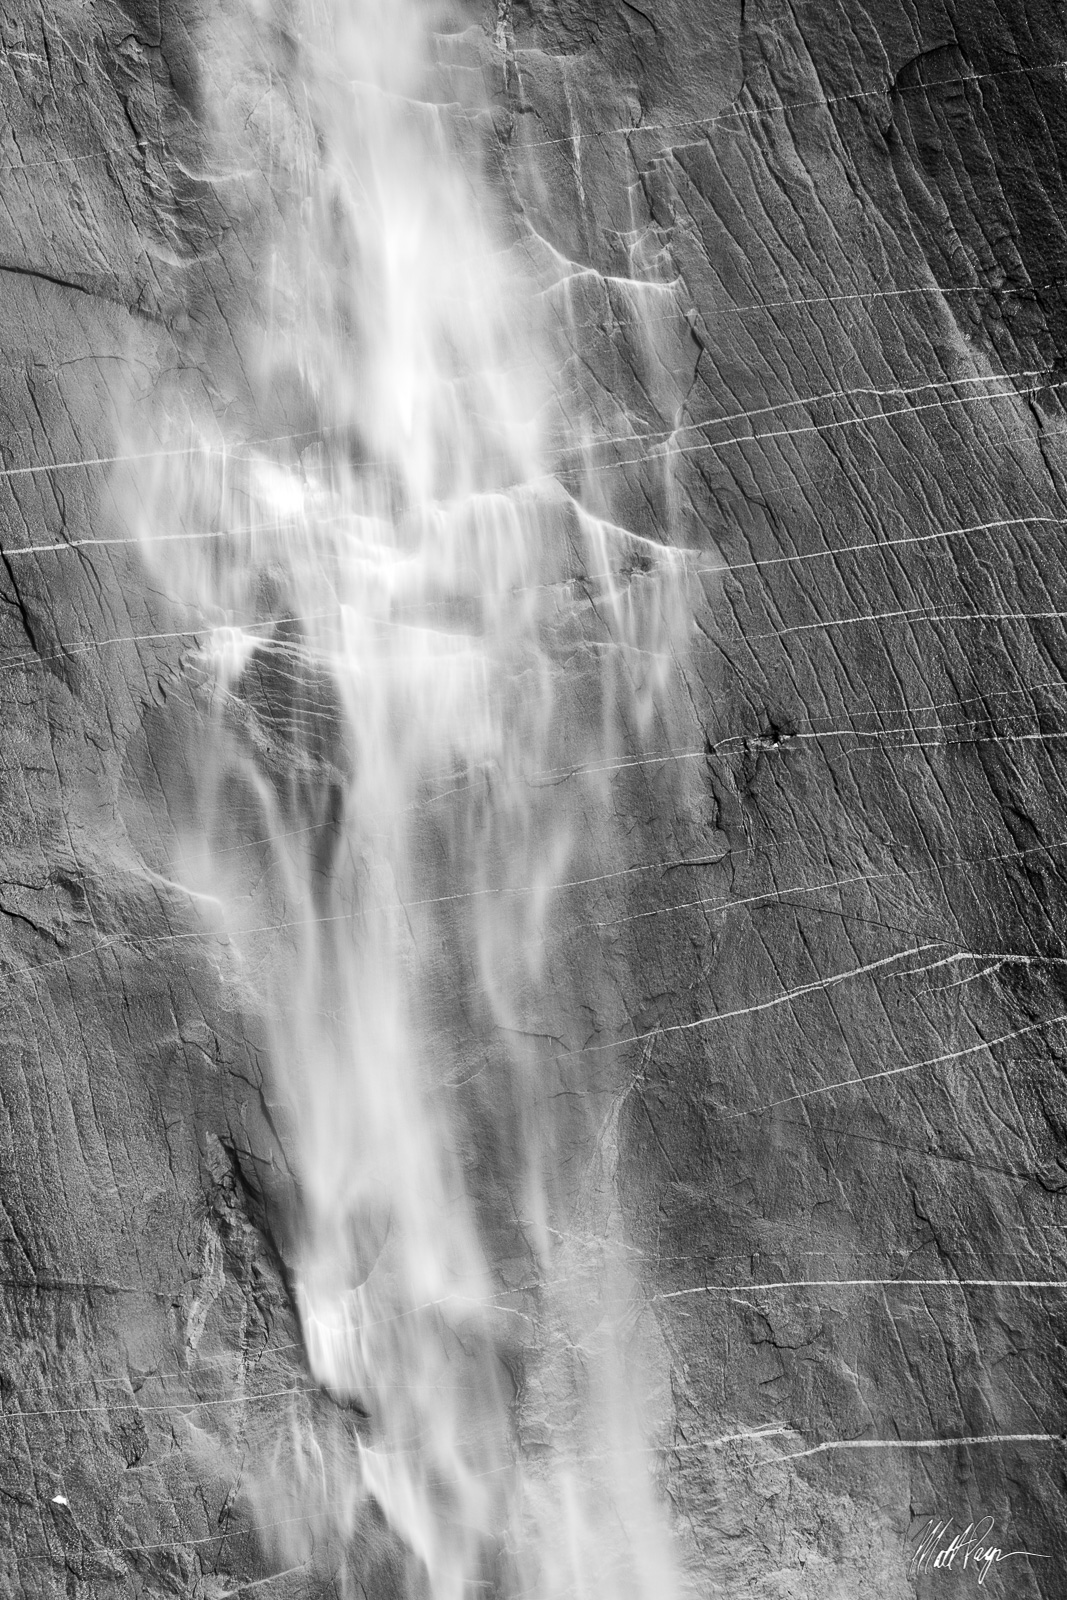 Black and White, Upper Yosemite Falls, Yosemite National Park, photo